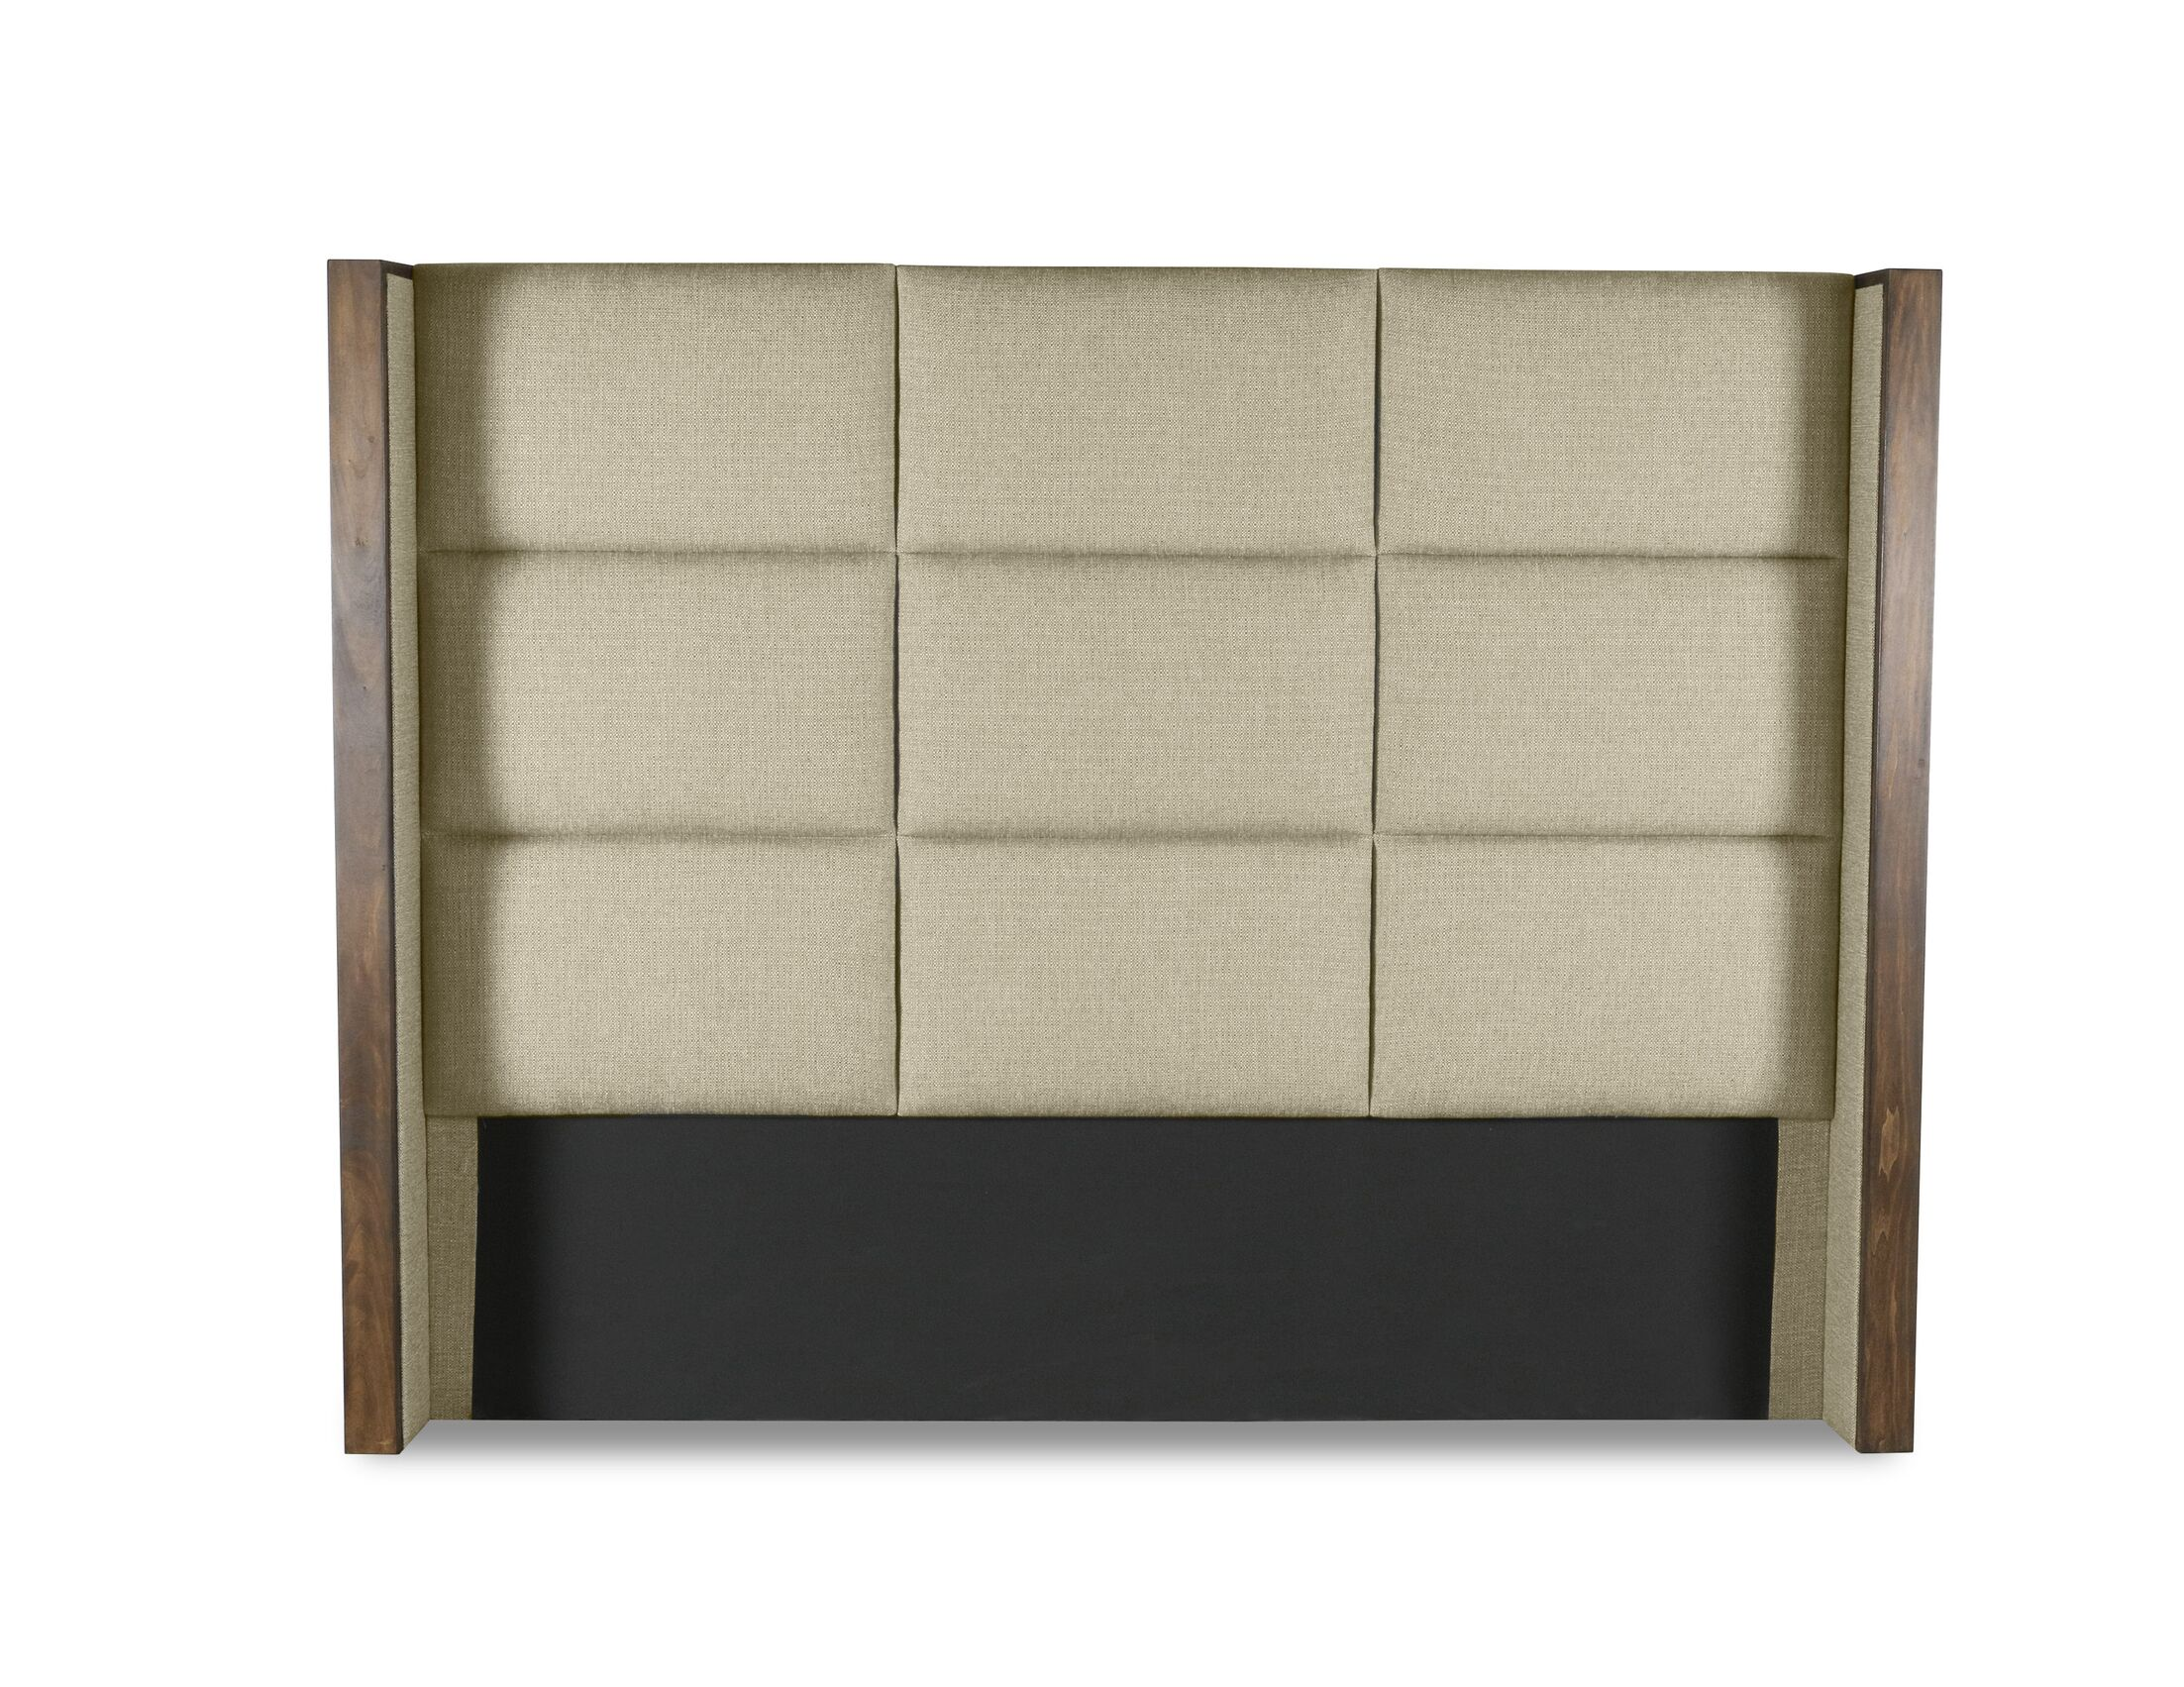 Hank Square Tufted Upholstered Wingback Headboard Size: High Height California King, Color: Sand